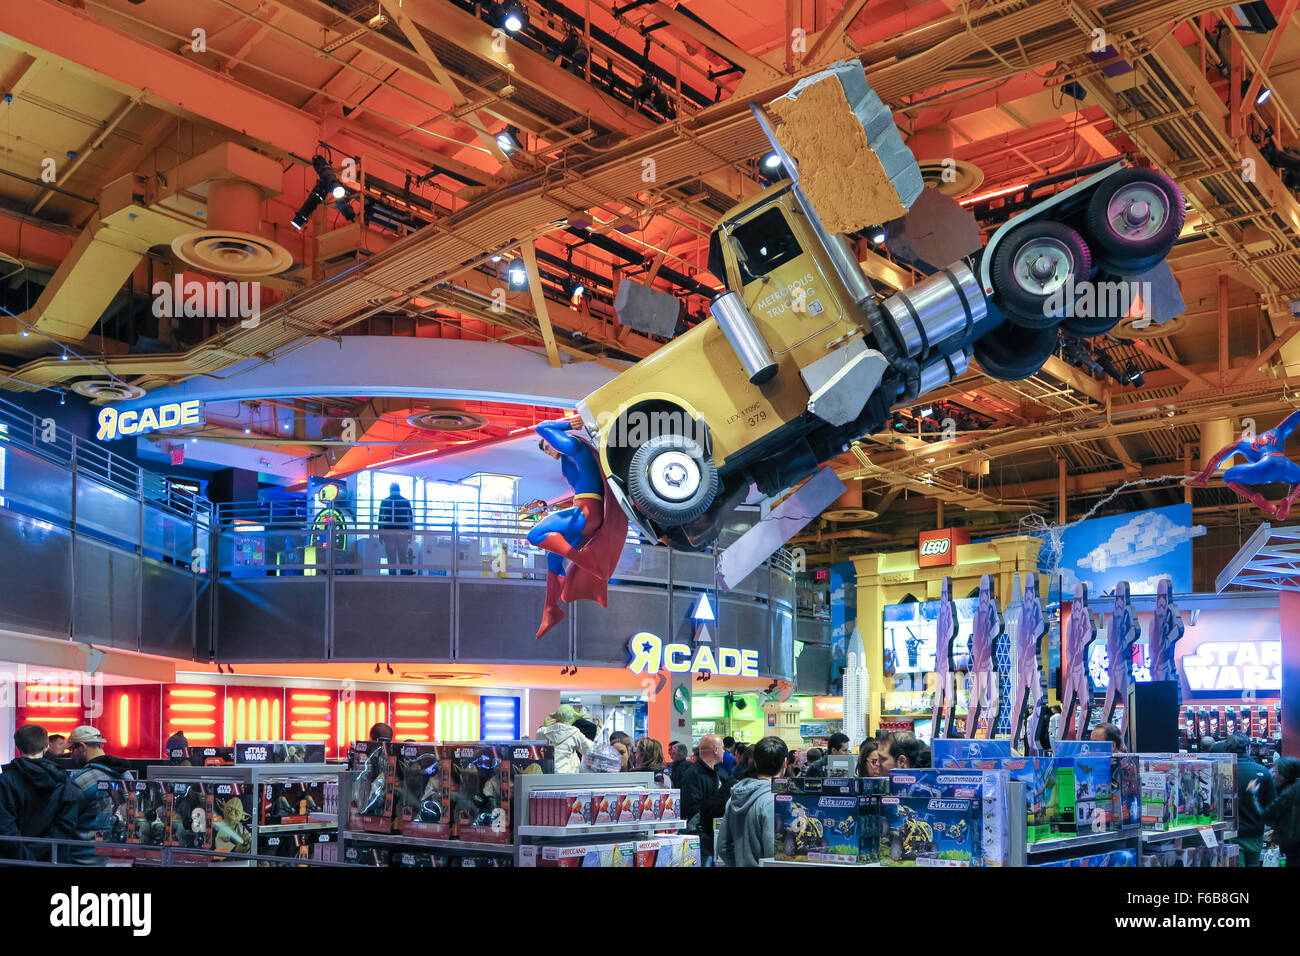 Toys R Us Times Square : Toys r us interior at times square nyc stock photo